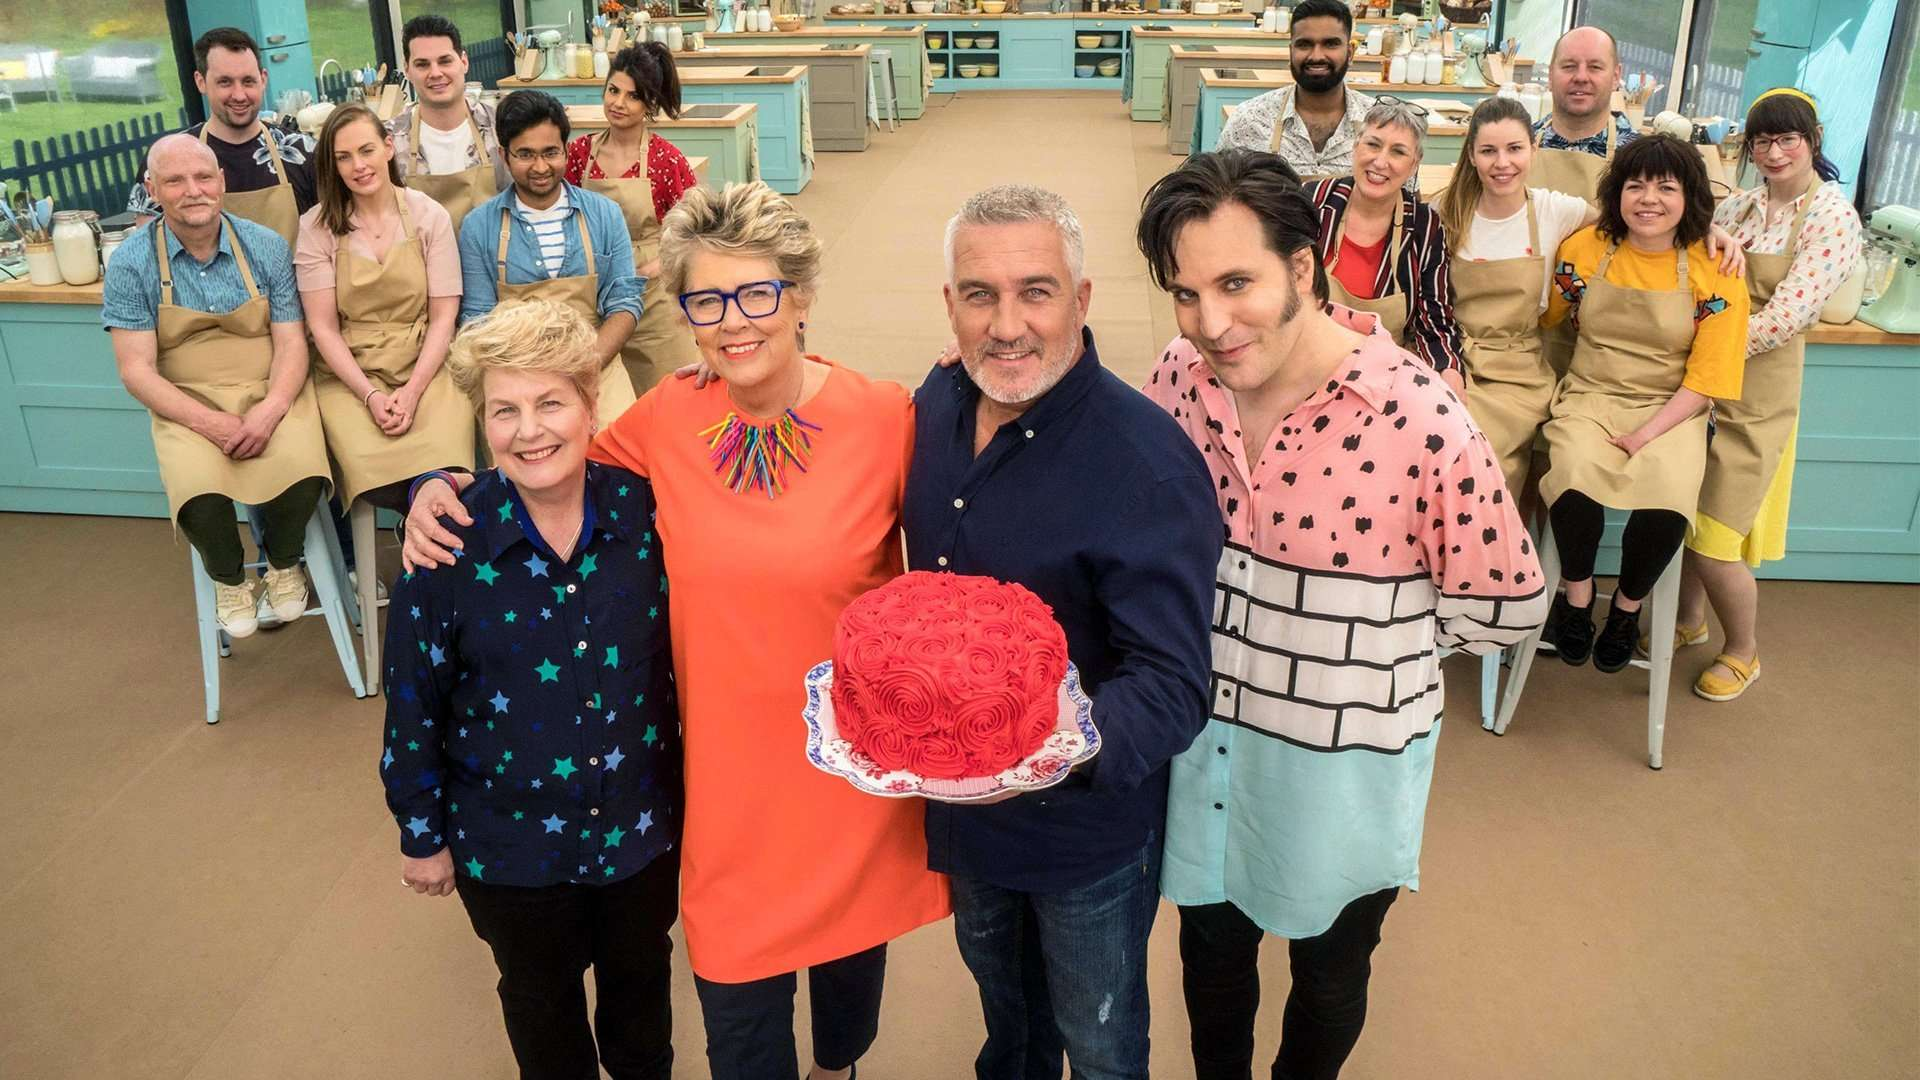 How to watch the Great British Bake Off abroad - September 2018